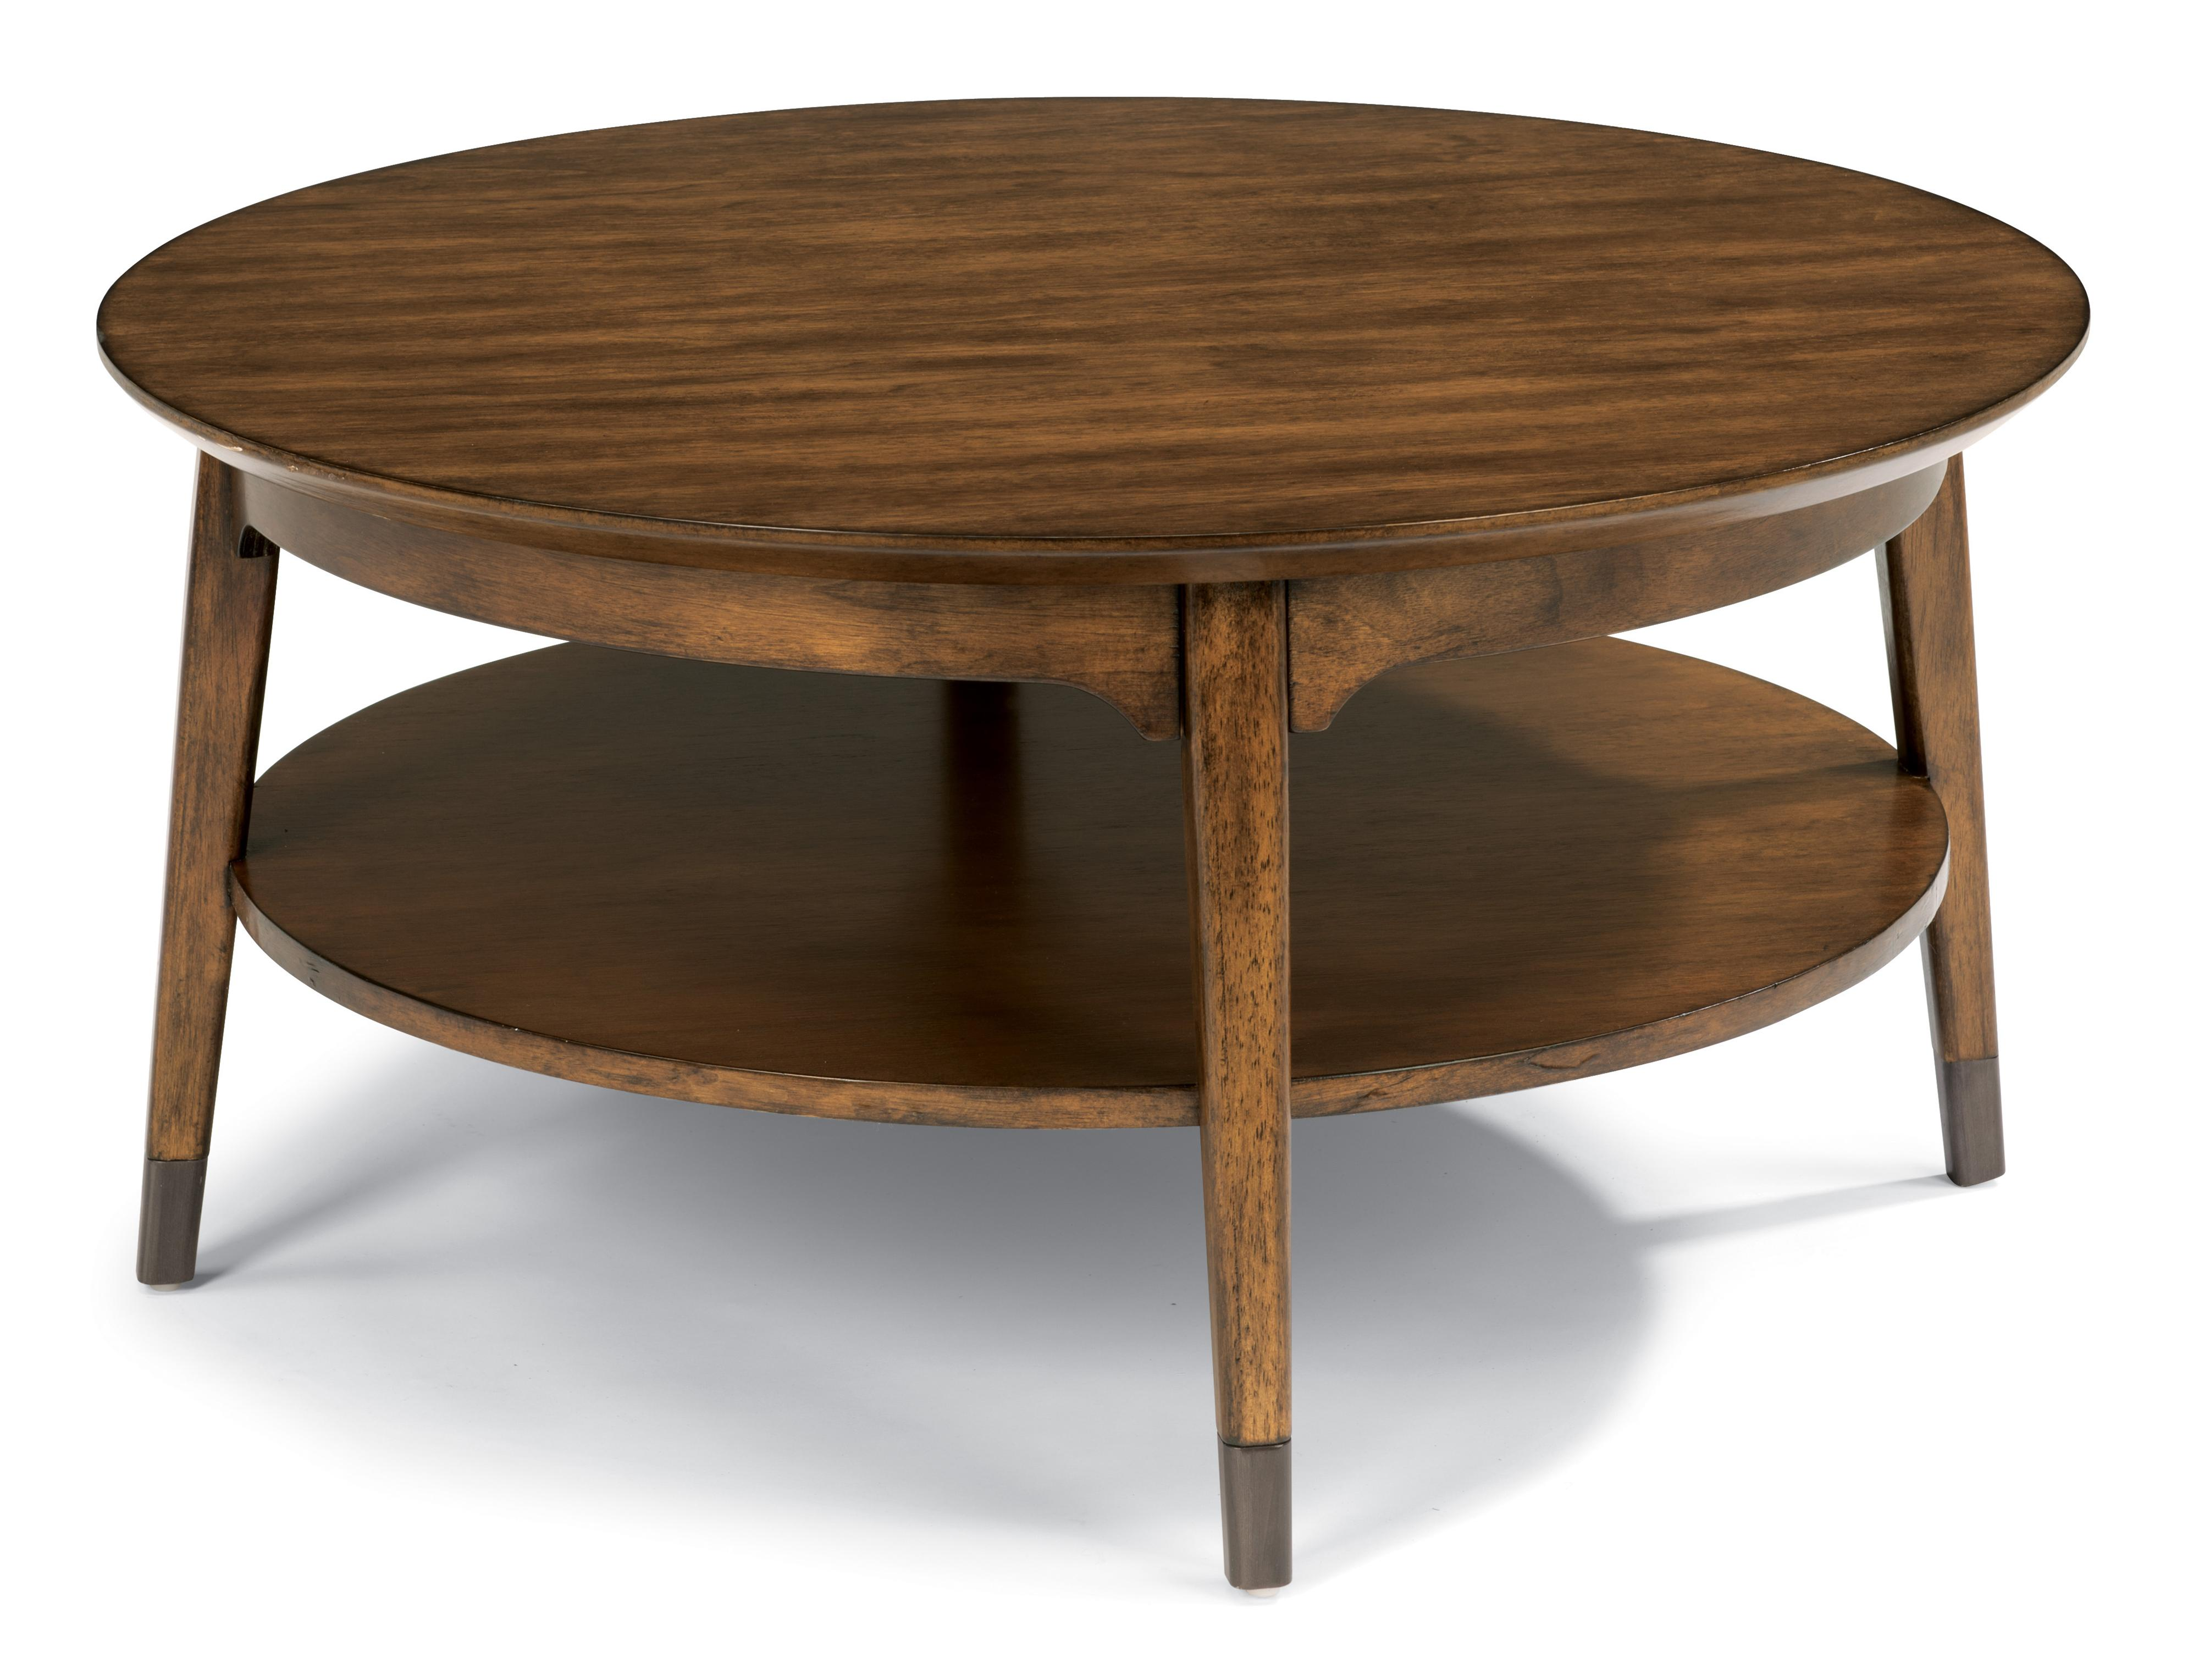 Flexsteel Gemini Mid Century Round Cocktail Table With Aged Metal Leg Caps Belfort Furniture